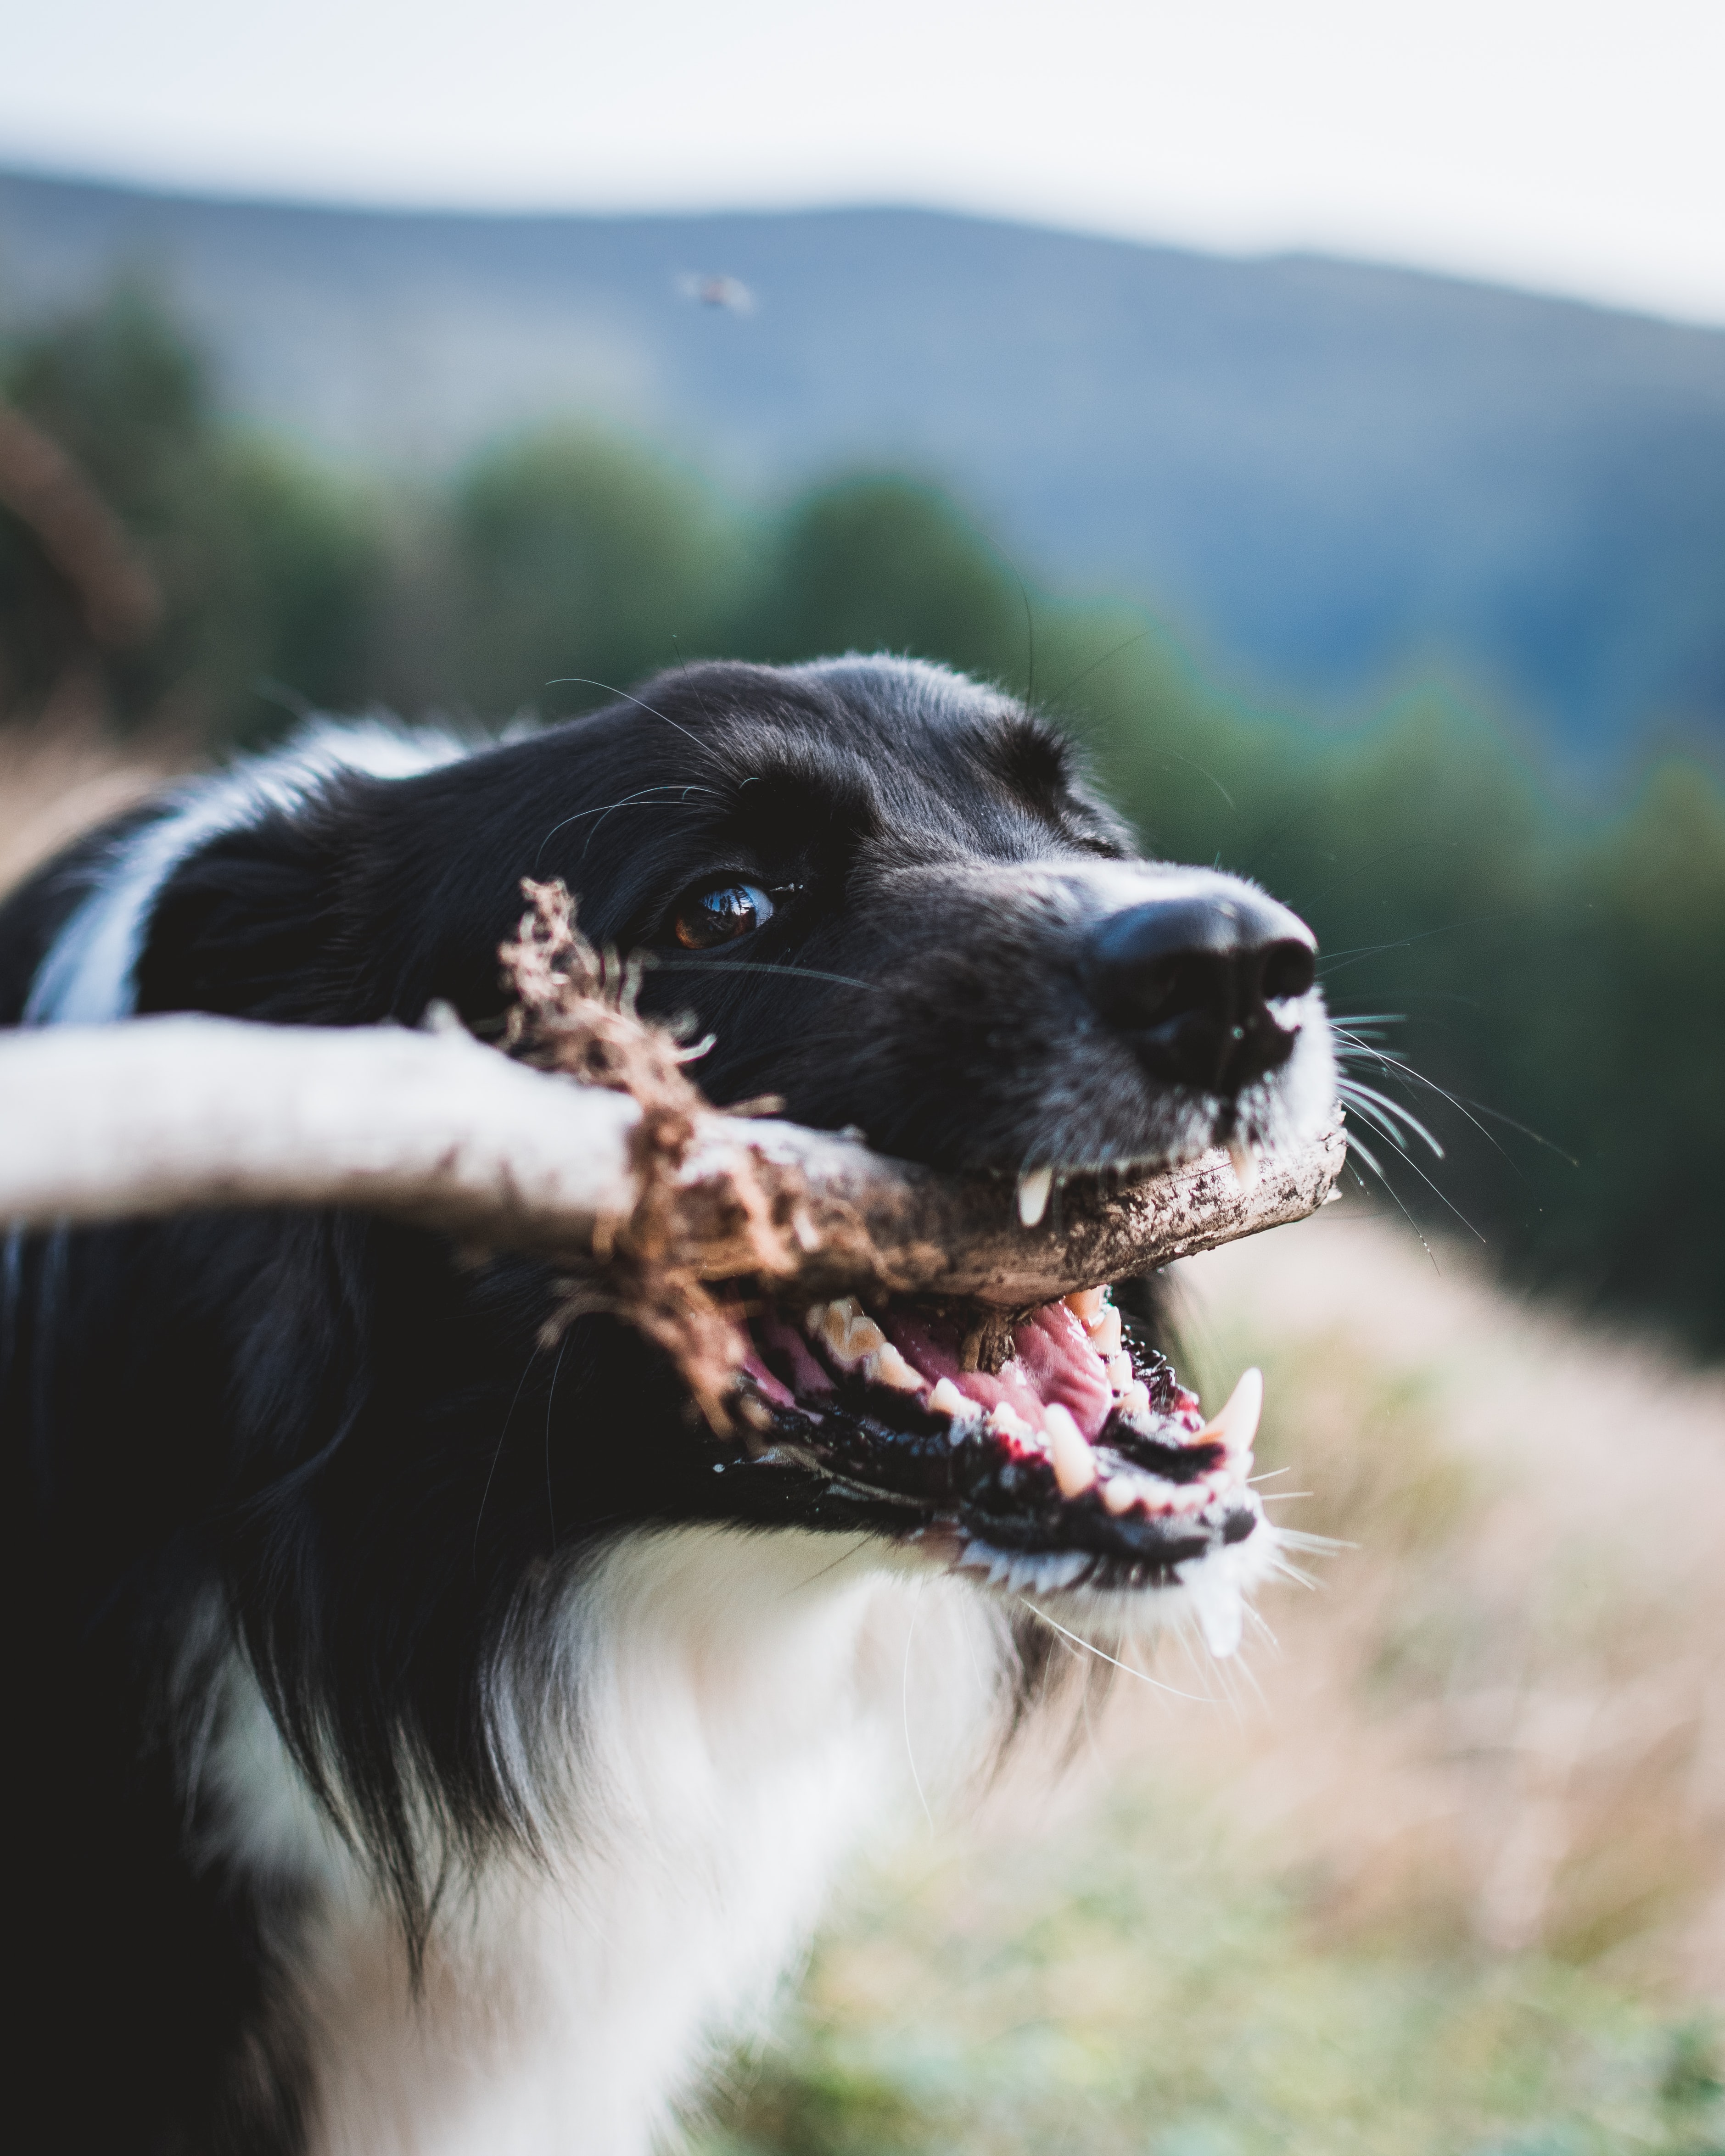 Signs Of Dental Disease In Pets - dog and stick